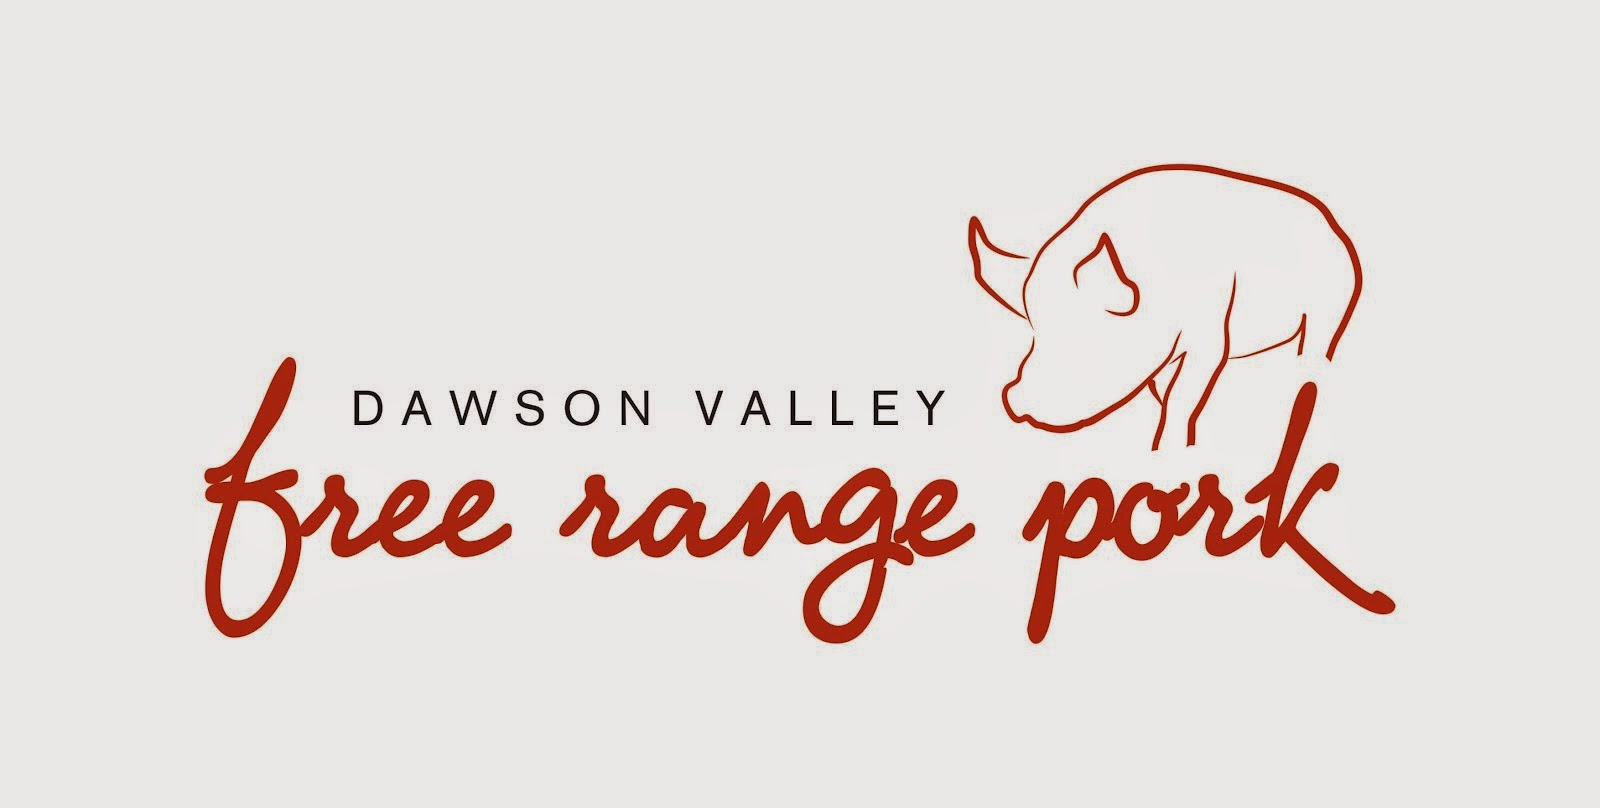 Dawson Valley Free Range